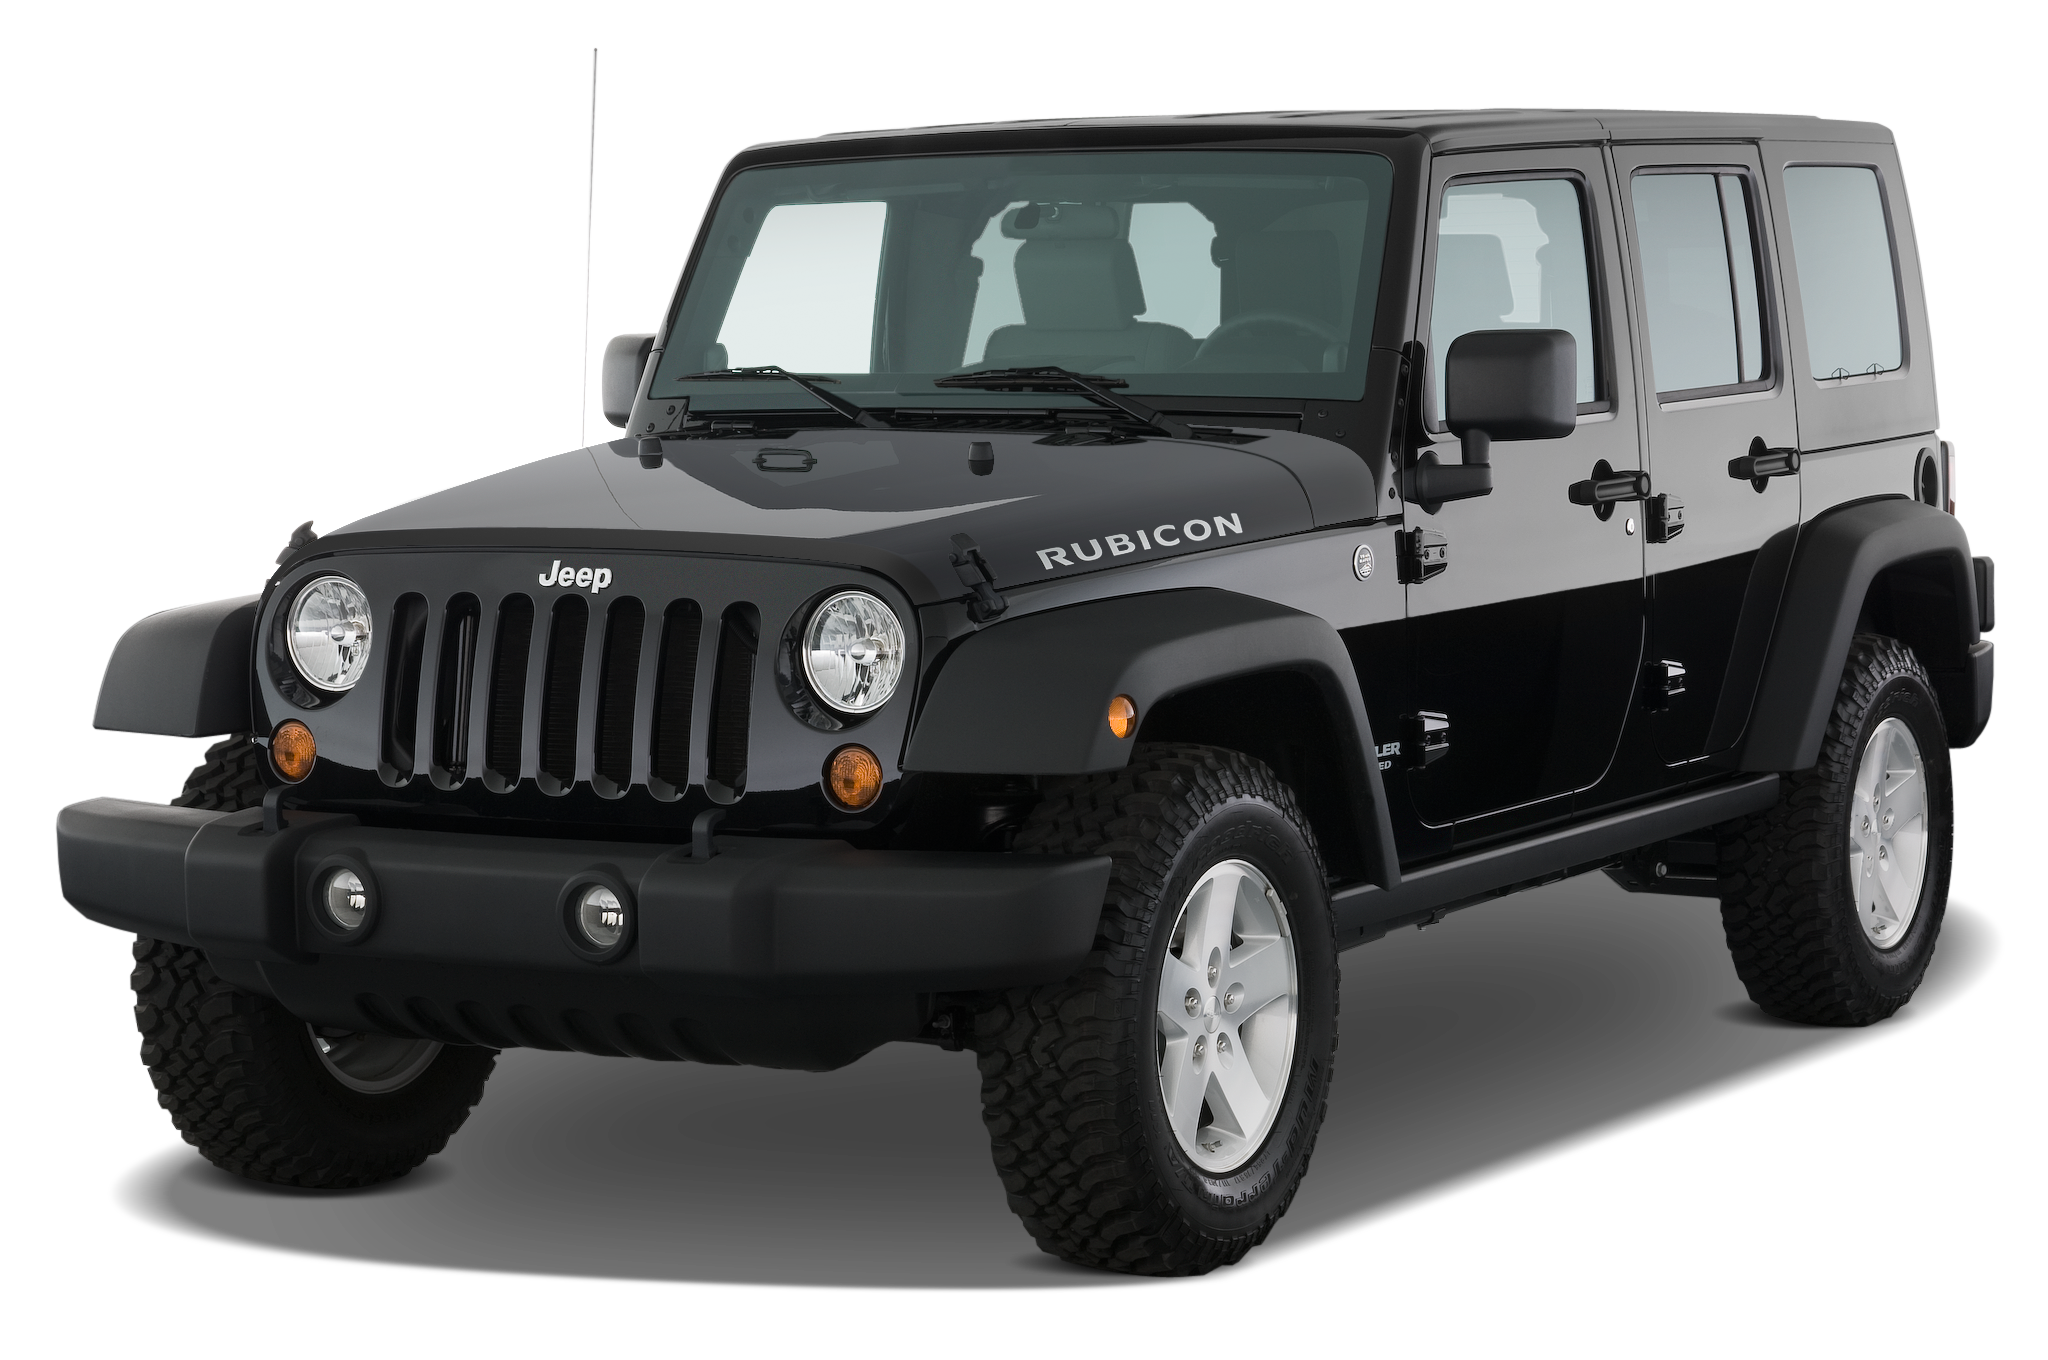 roading make cj netcarshow netcar en sport off exterior road wheel vehicle automotive city bumper jeep automobile land images icon car wallpaper based utility compact on wrangler photo